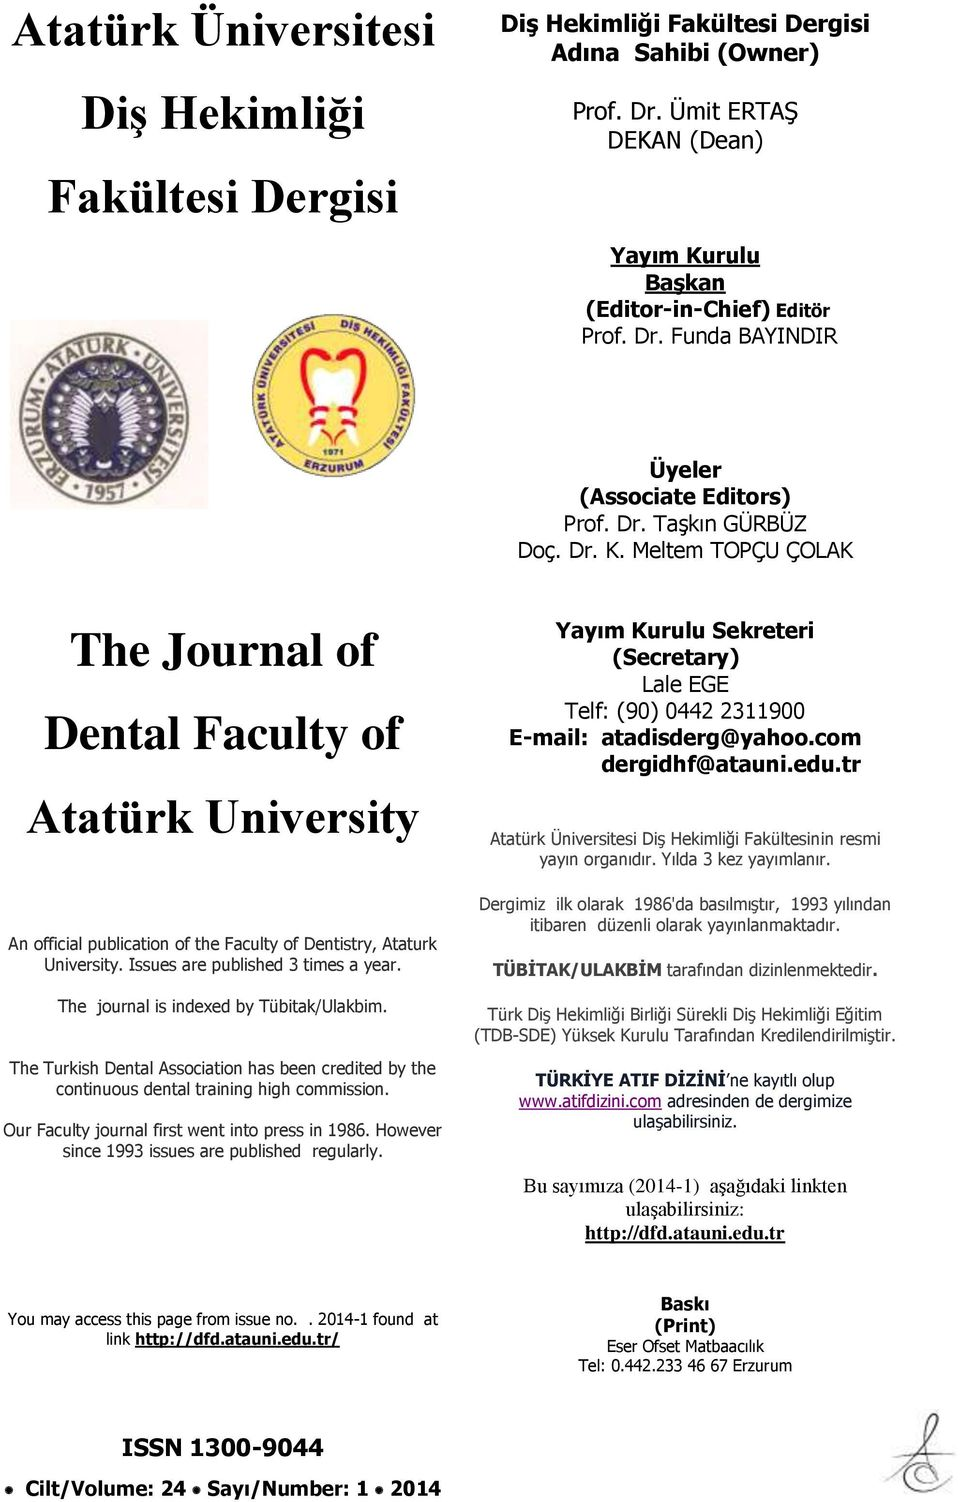 Issues are published 3 times a year. The journal is indexed by Tübitak/Ulakbim. The Turkish Dental Association has been credited by the continuous dental training high commission.